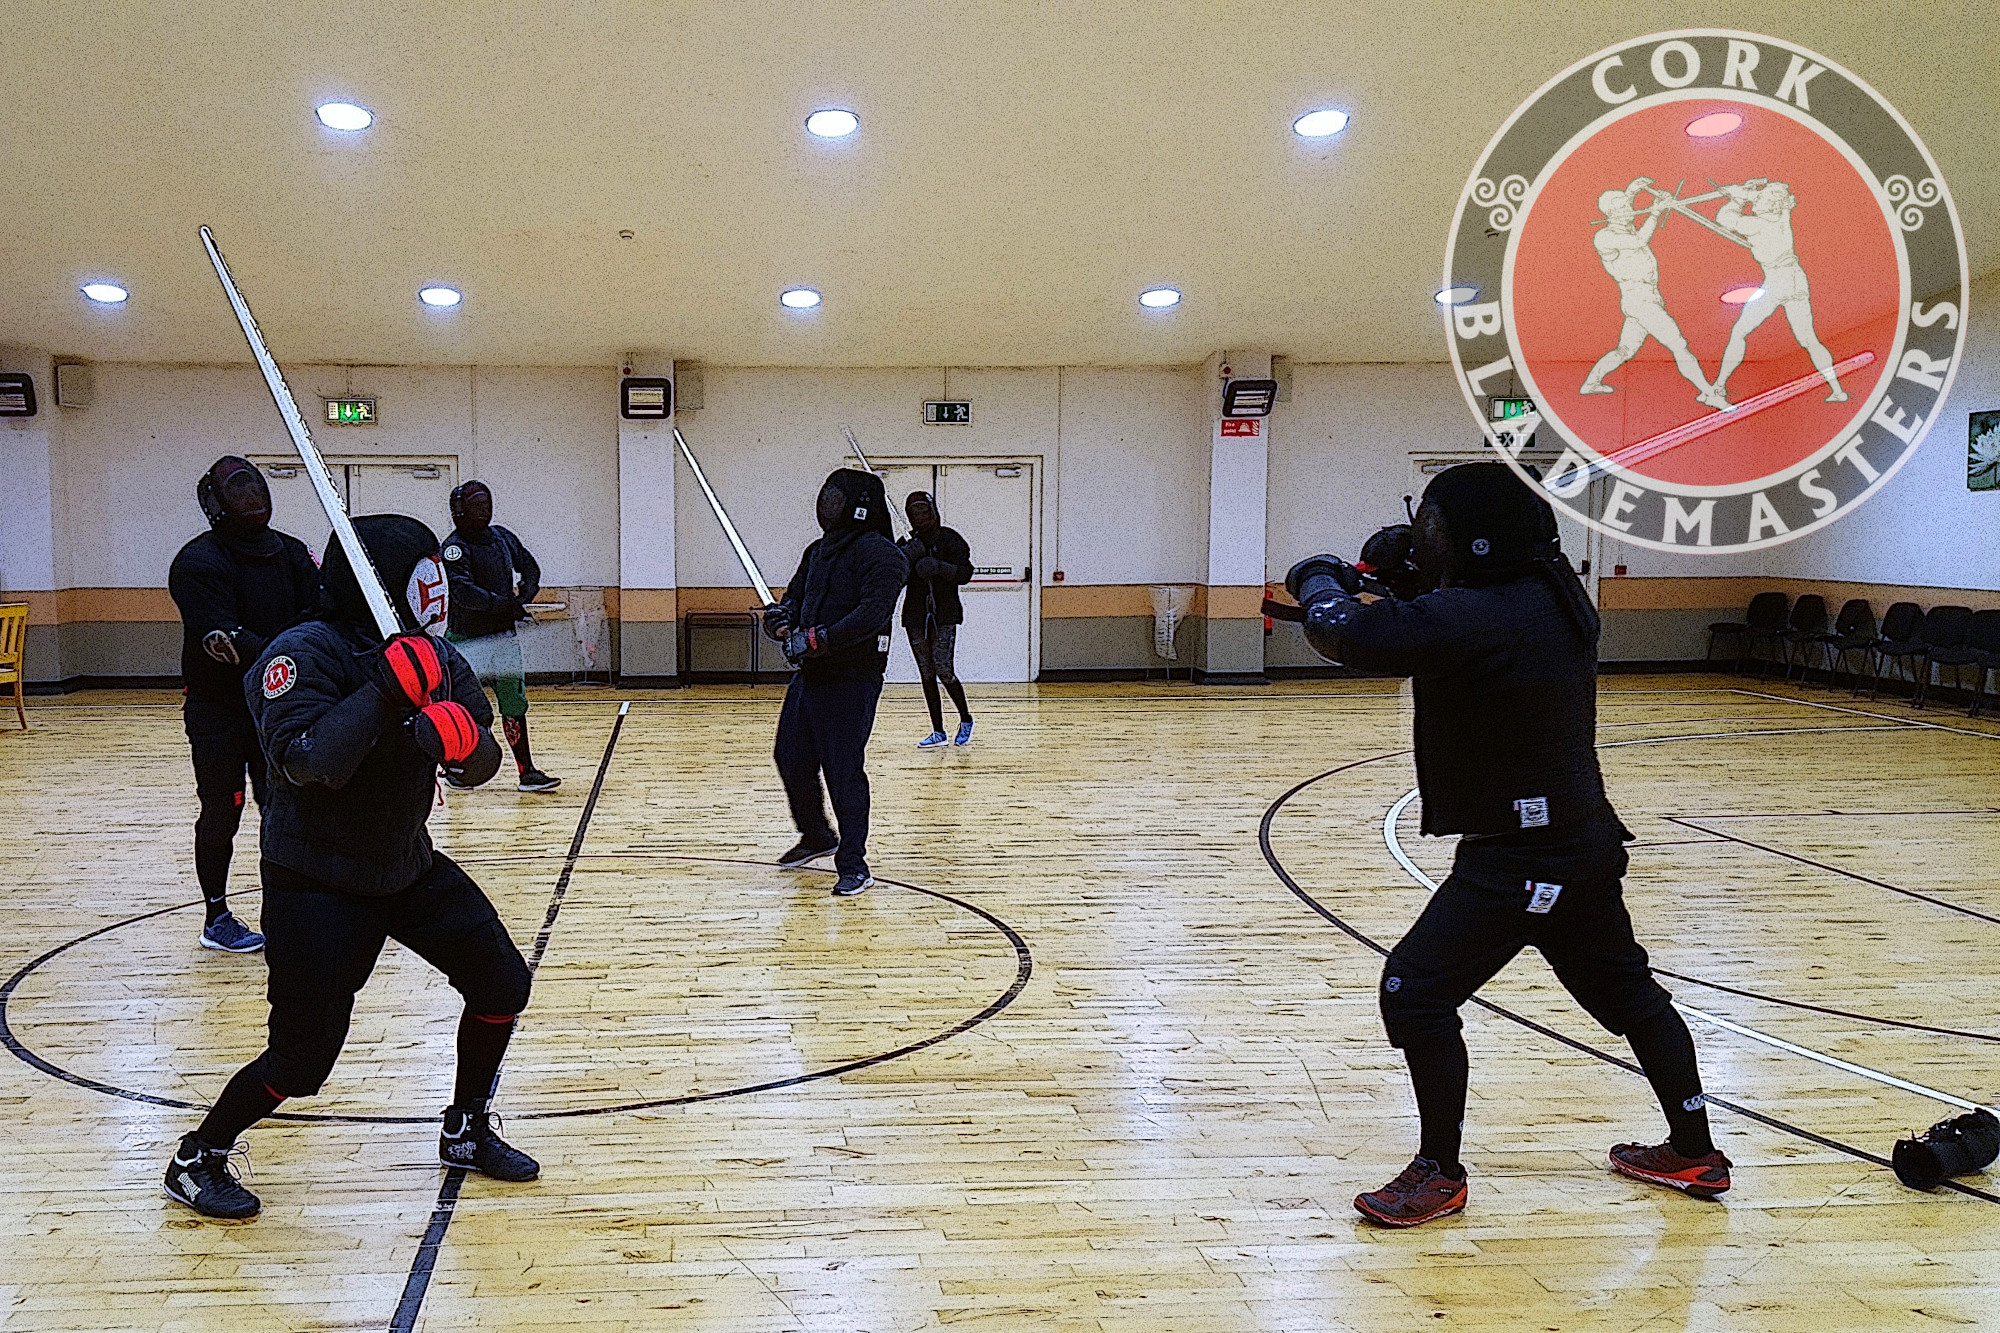 Longsword Training – Wed 11/03/2020